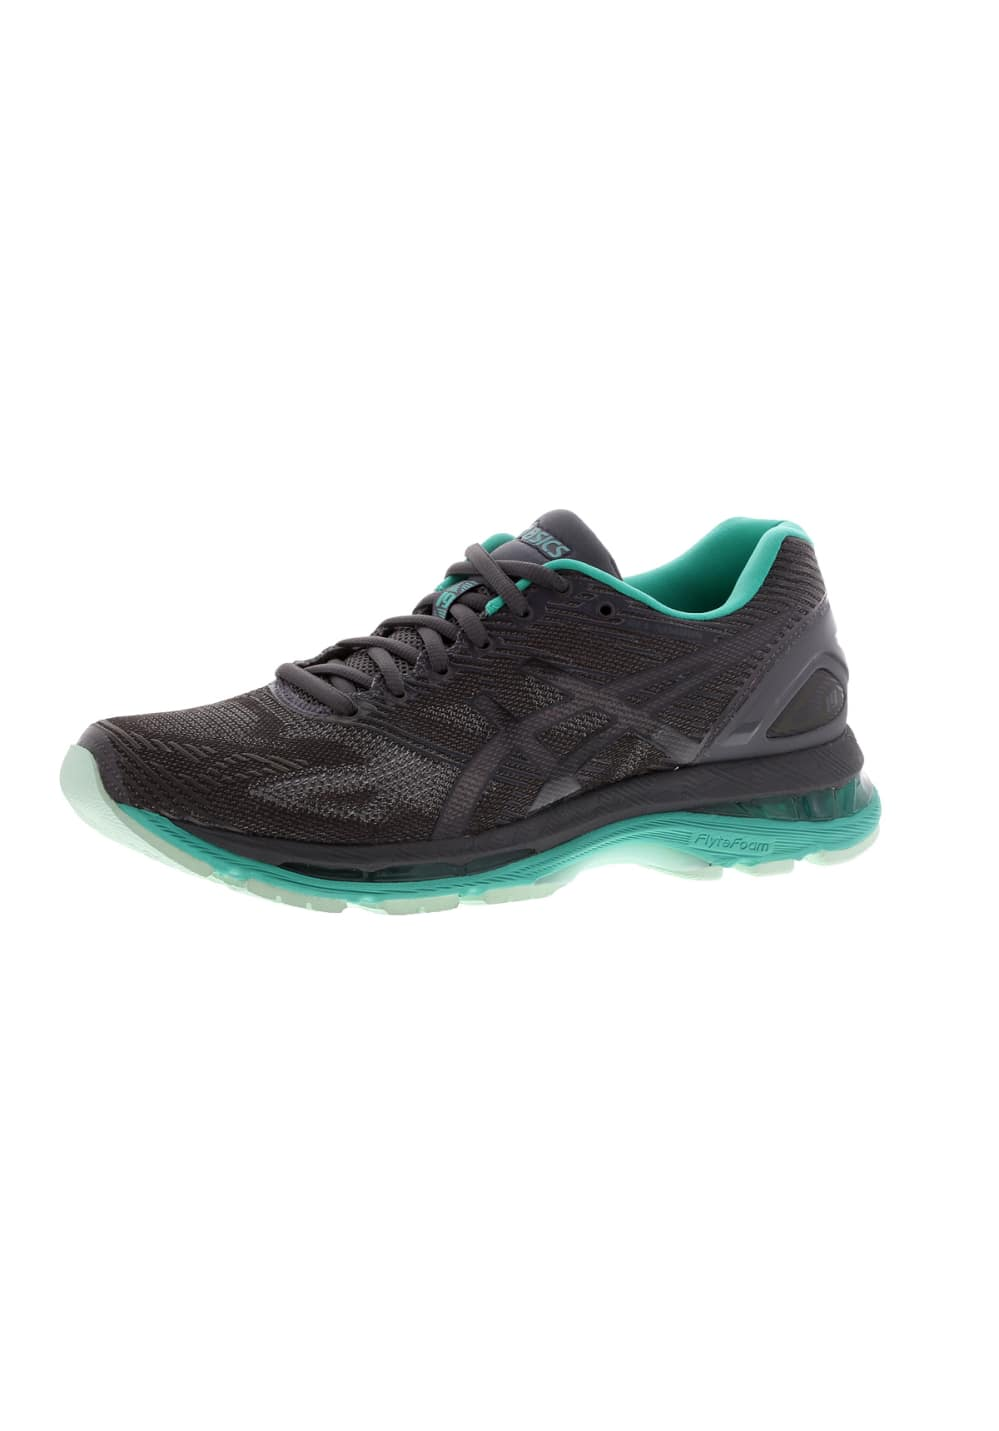 sports shoes 8e439 8ad02 ASICS GEL-Nimbus 19 Lite-Show - Running shoes for Women - Black